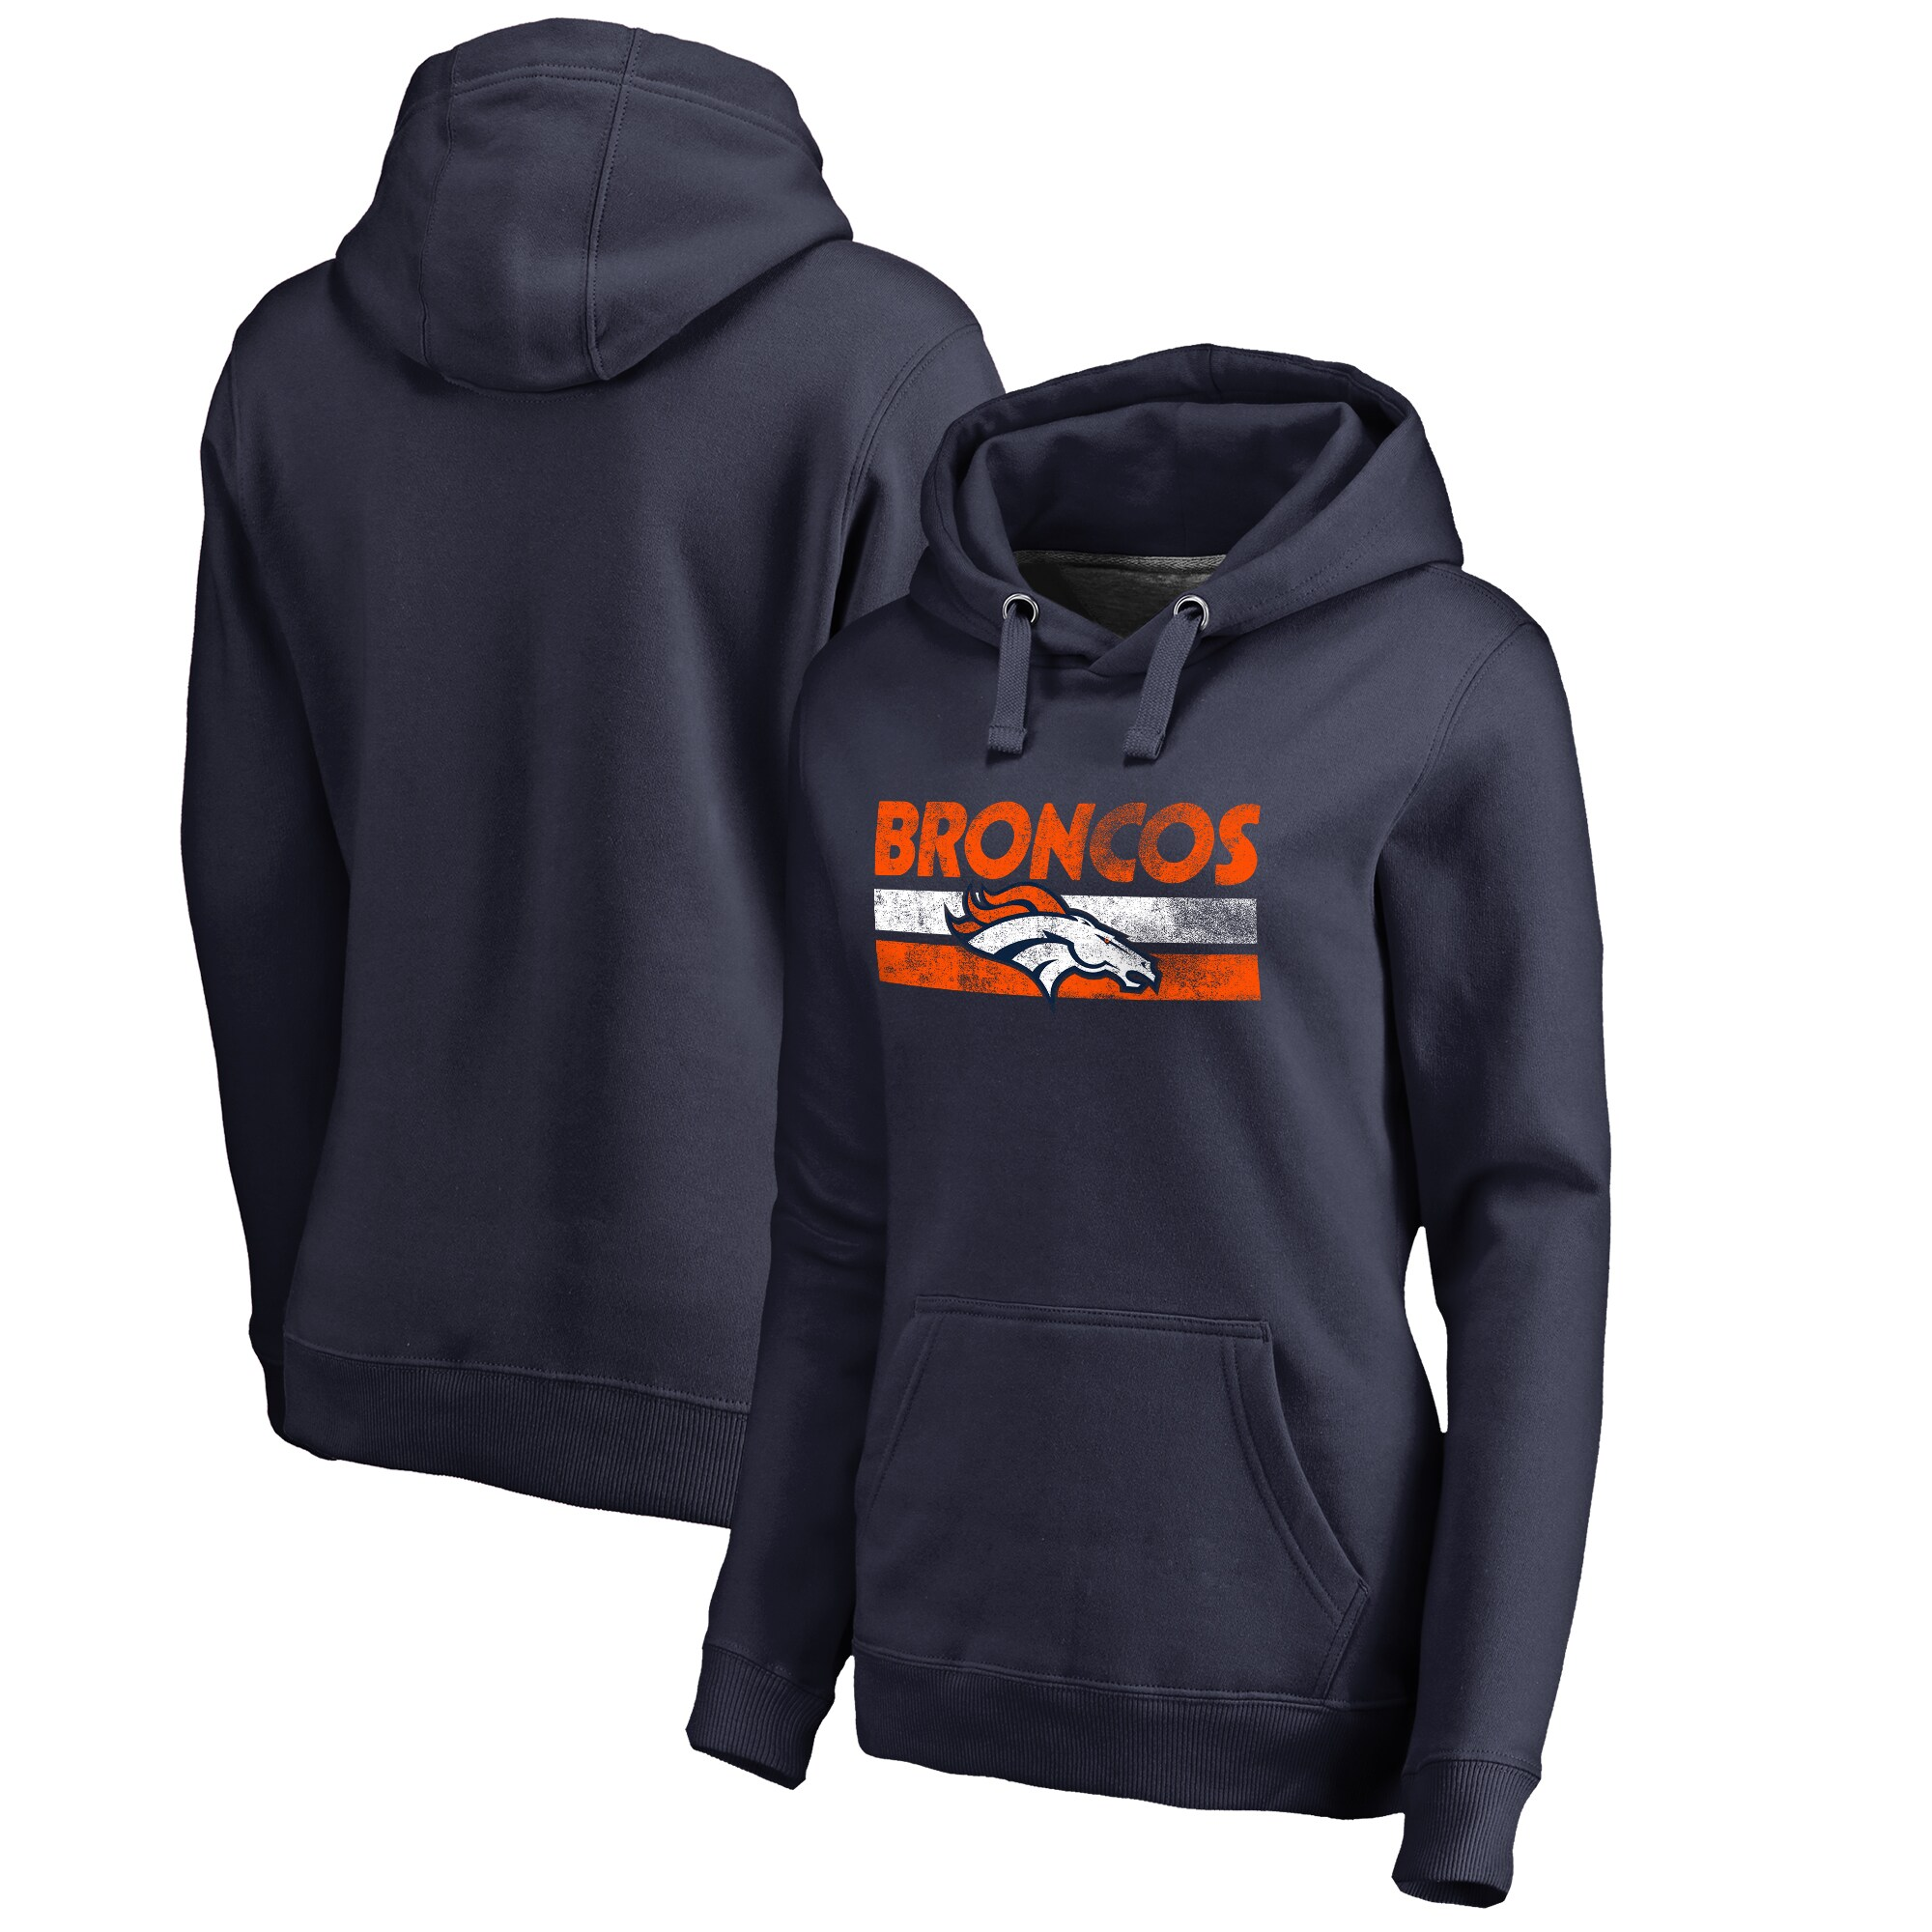 Denver Broncos NFL Pro Line by Fanatics Branded Women's Plus Sizes First String Pullover Hoodie - Navy